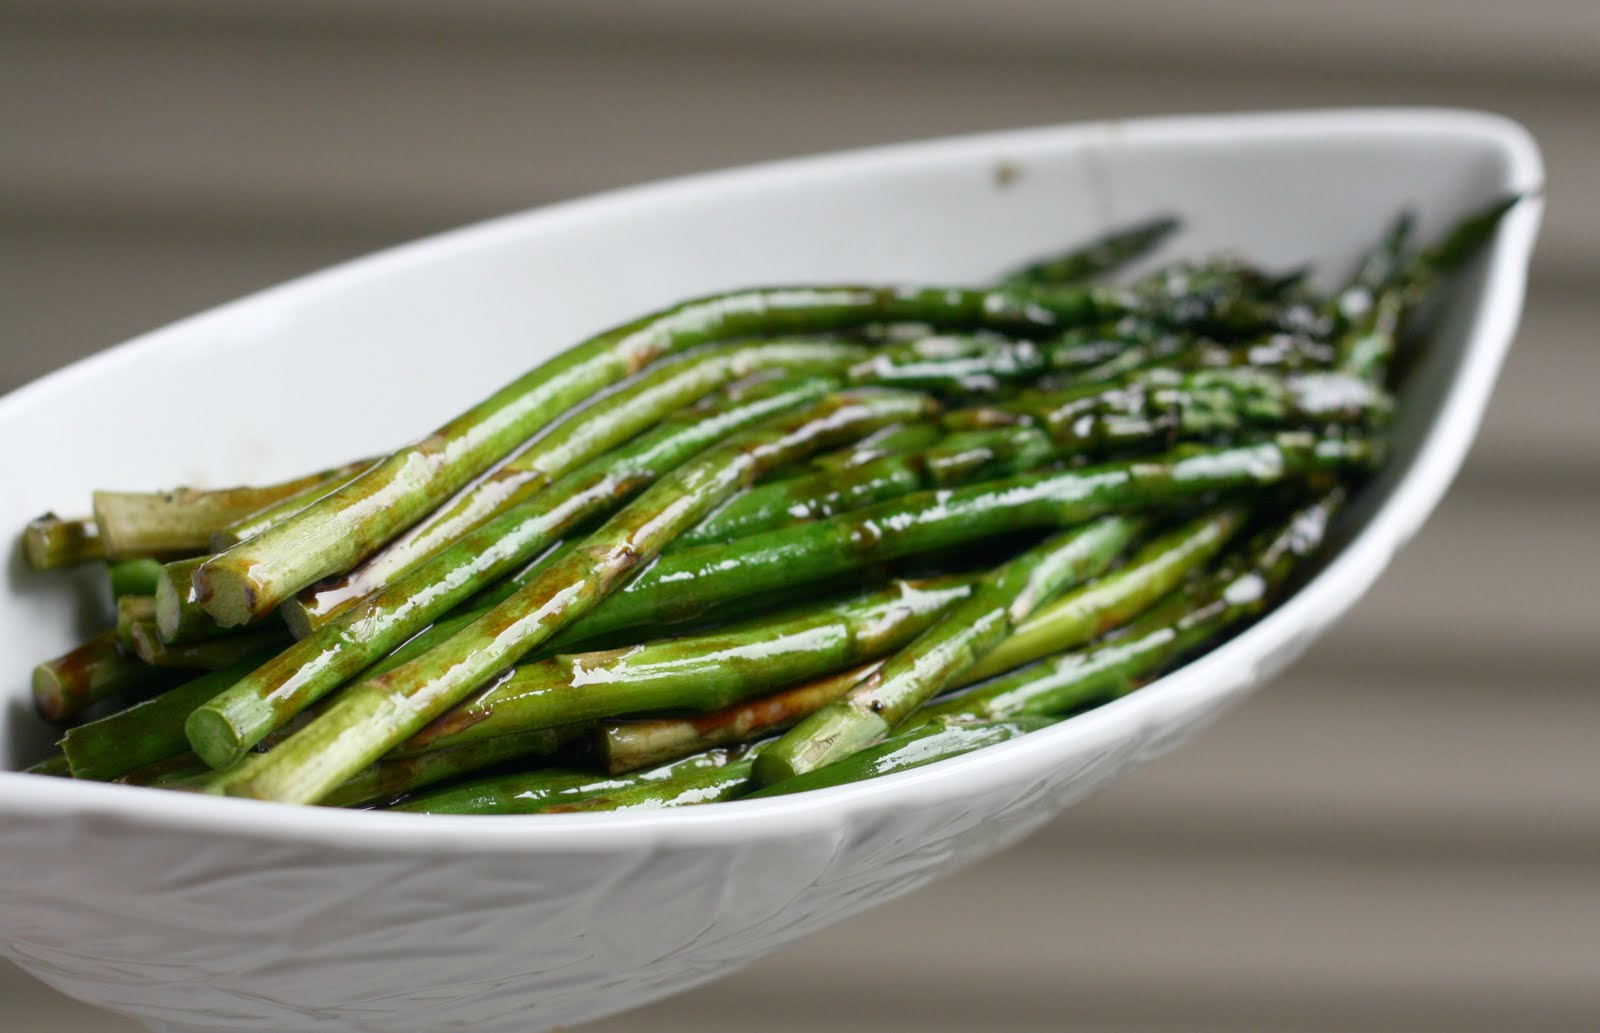 ... Test Kitchen: Roasted Asparagus with Balsamic Brown Butter Sauce